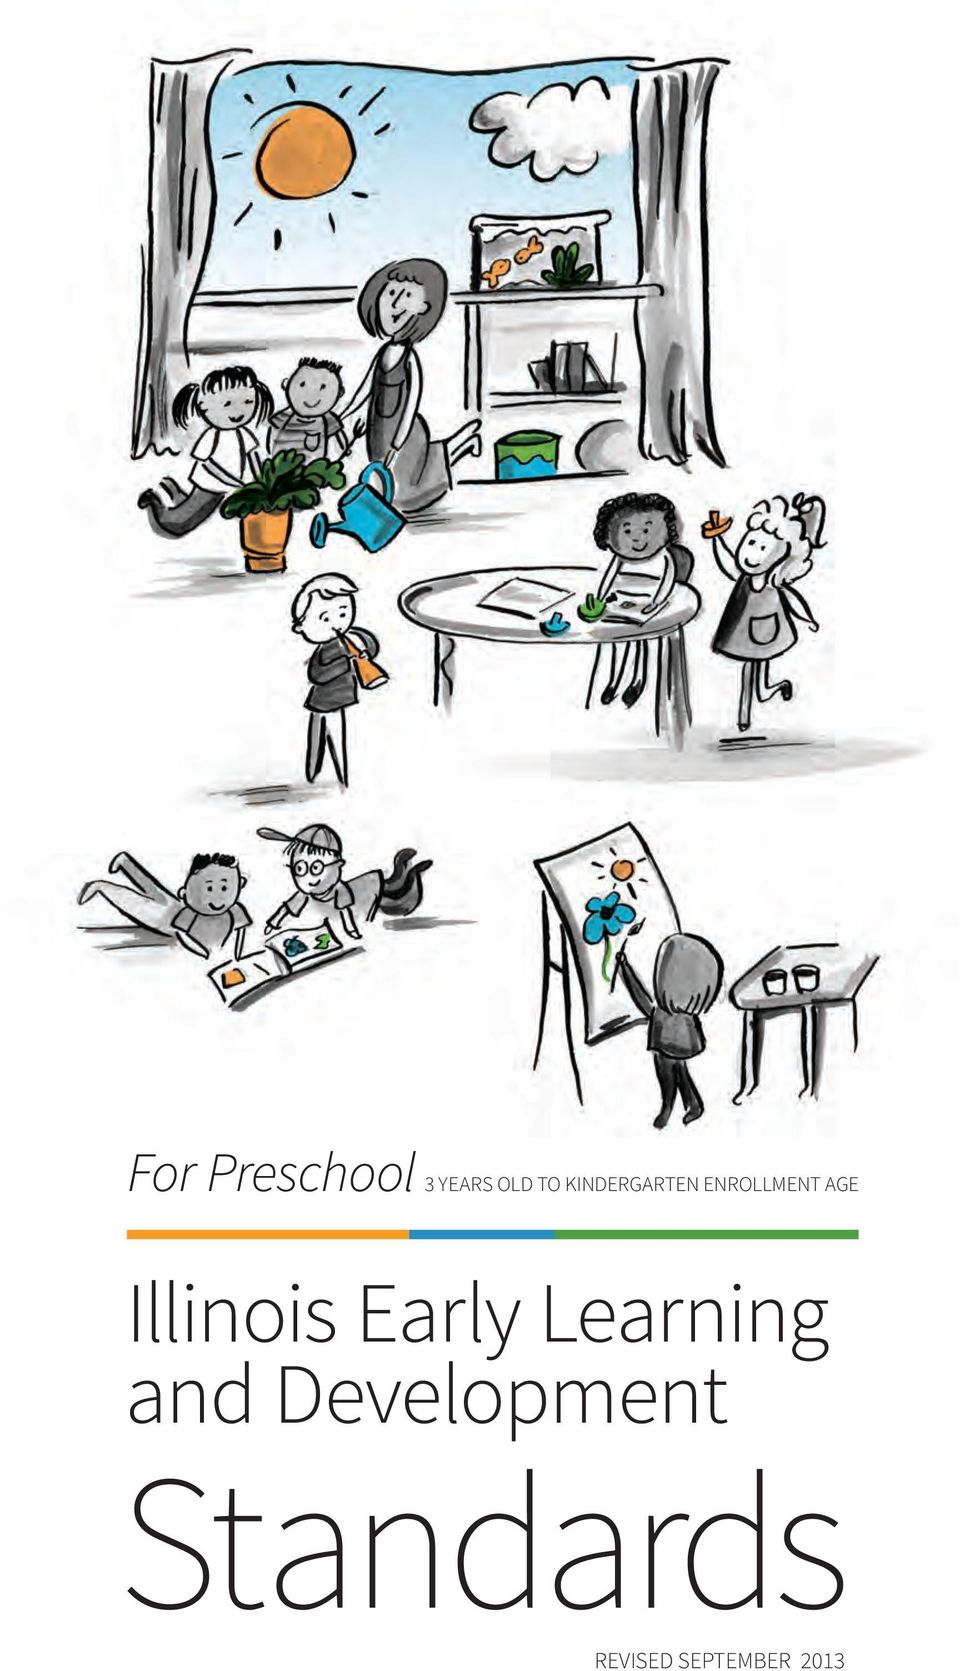 Illinois Early Learning and